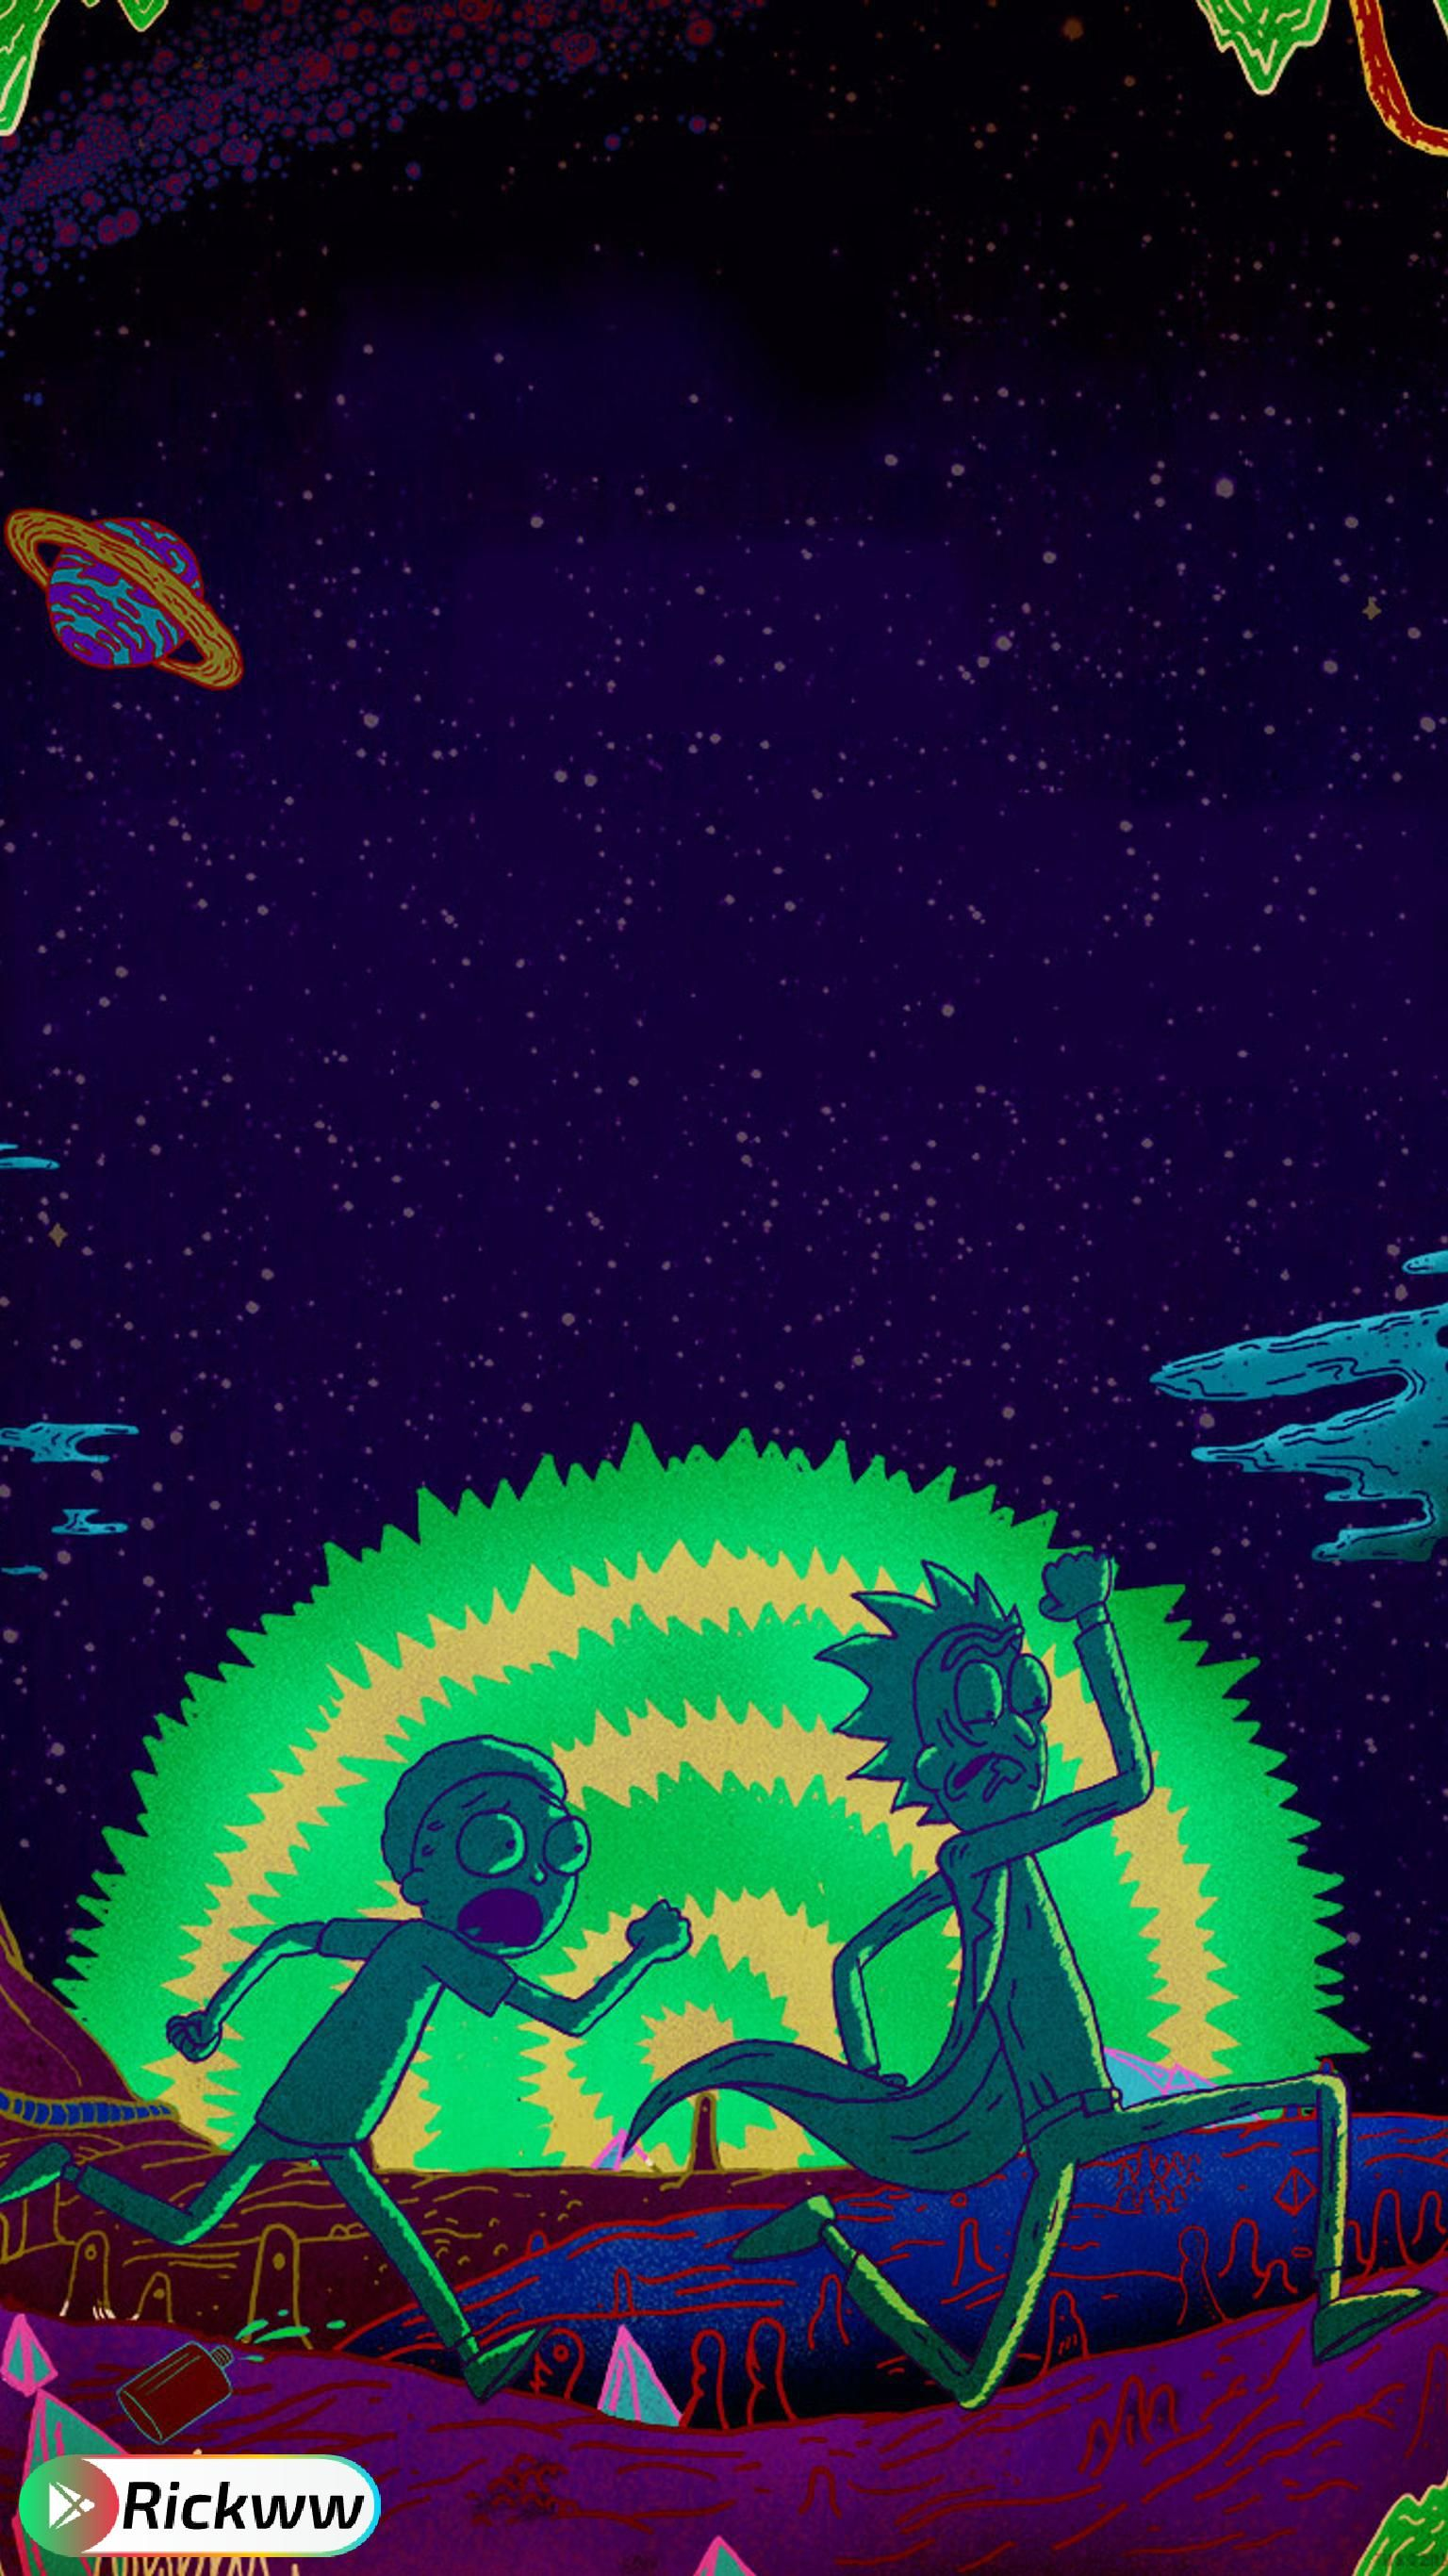 Rick Morty Wallpaper Rick And Morty Poster Cartoon Wallpaper Phone Wallpaper